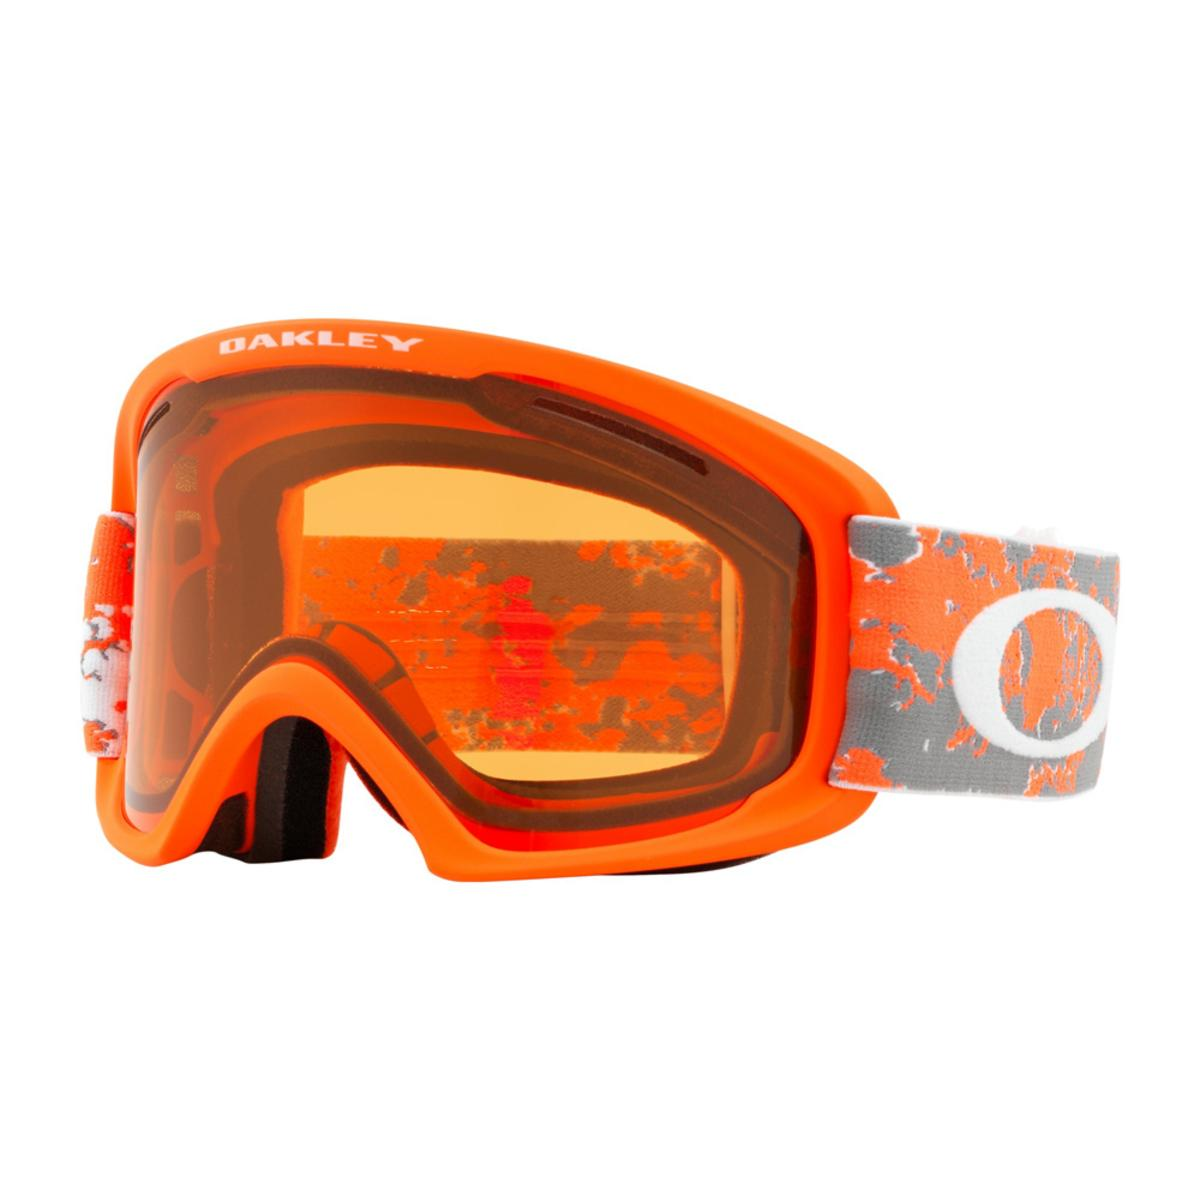 f1ae5e662d Oakley O Frame 2.0 XL Arctic Fracture Orange Snow Goggle w Persimmon - The  Warming Store